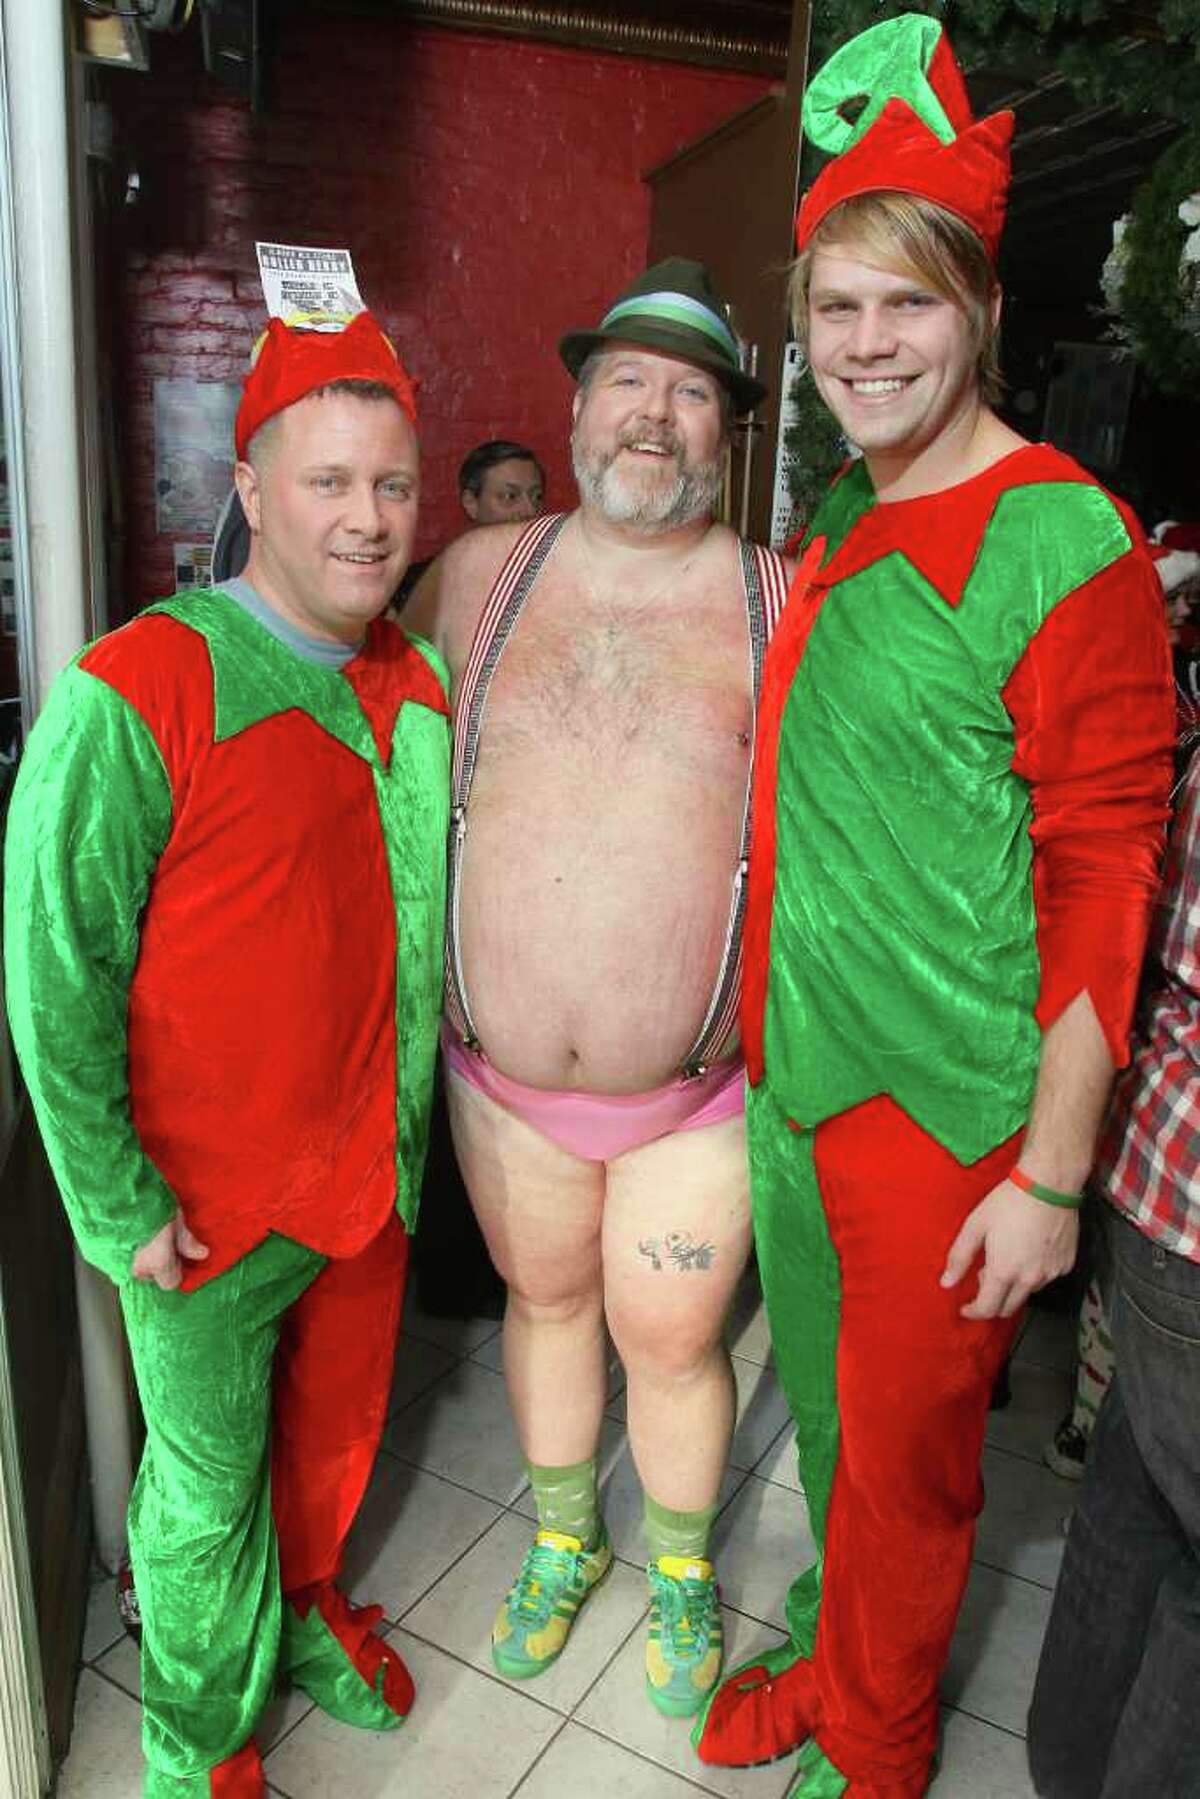 Jim Larson, race director for the Santa Speedo Sprint, with his elves, Scott Rhubright, left, and Bradford Stevens. (Joe Putrock / Special to the Times Union)